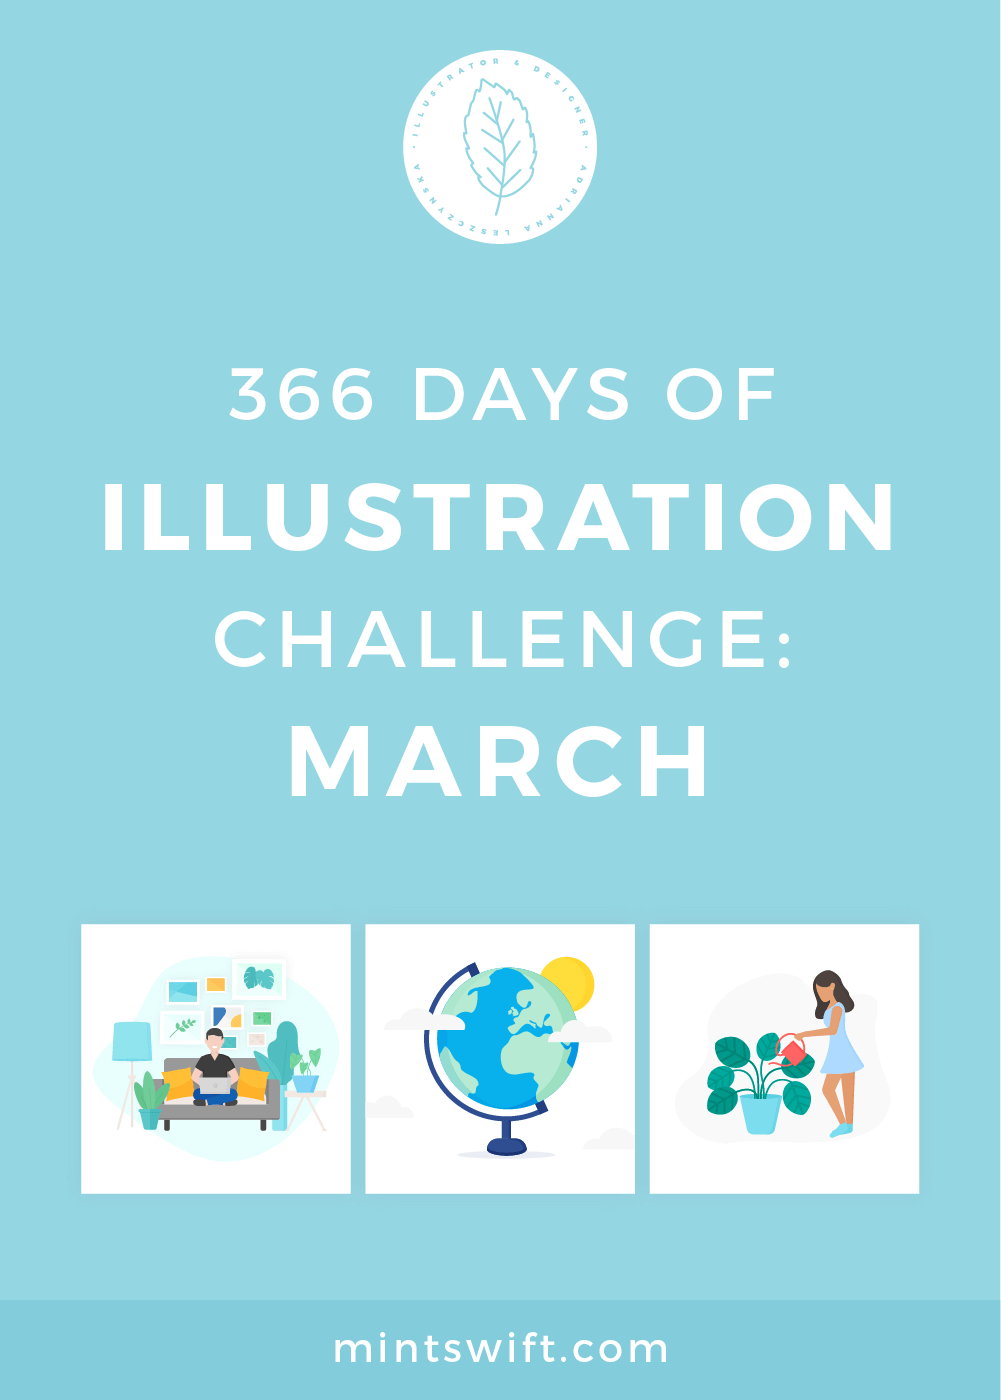 366 Days of Illustration Challenge - March by MintSwift. The third month (March) of illustration challenge, so day 61-91. Vector illustrations in flat design style about spring, plants, food